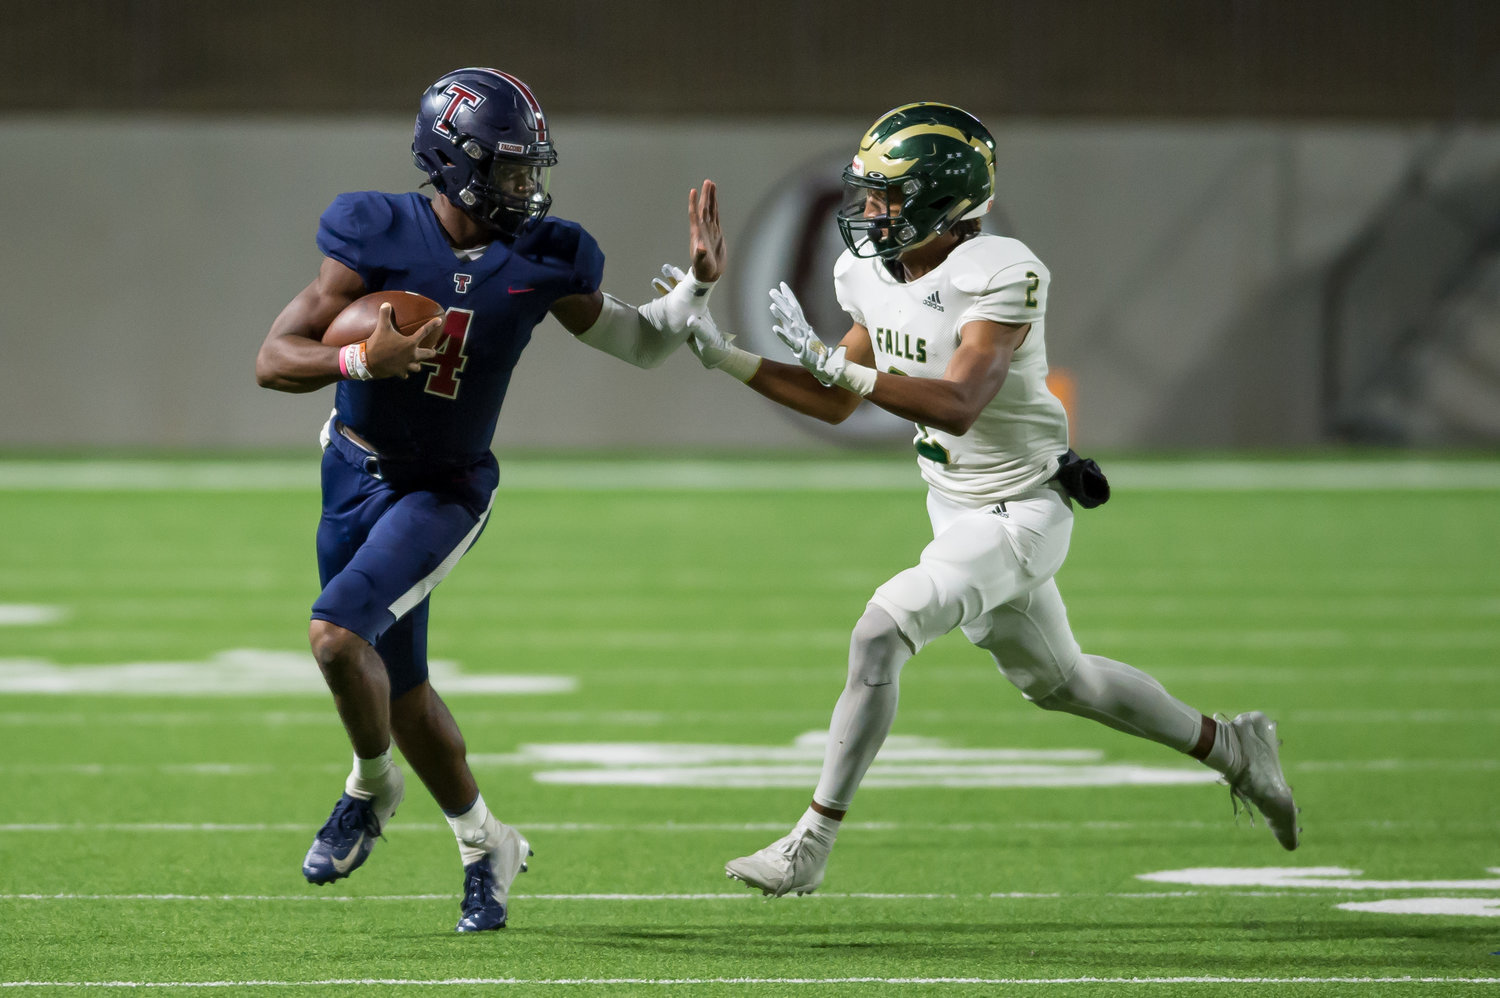 Jalen Milroe said he put in the work in the offseason to prepare himself for his final season for the Tomkins Falcons as starting quarterback. Recently named to MaxPreps' preseason all-state team, Milroe is committed to play for the Texas Longhorns next year.